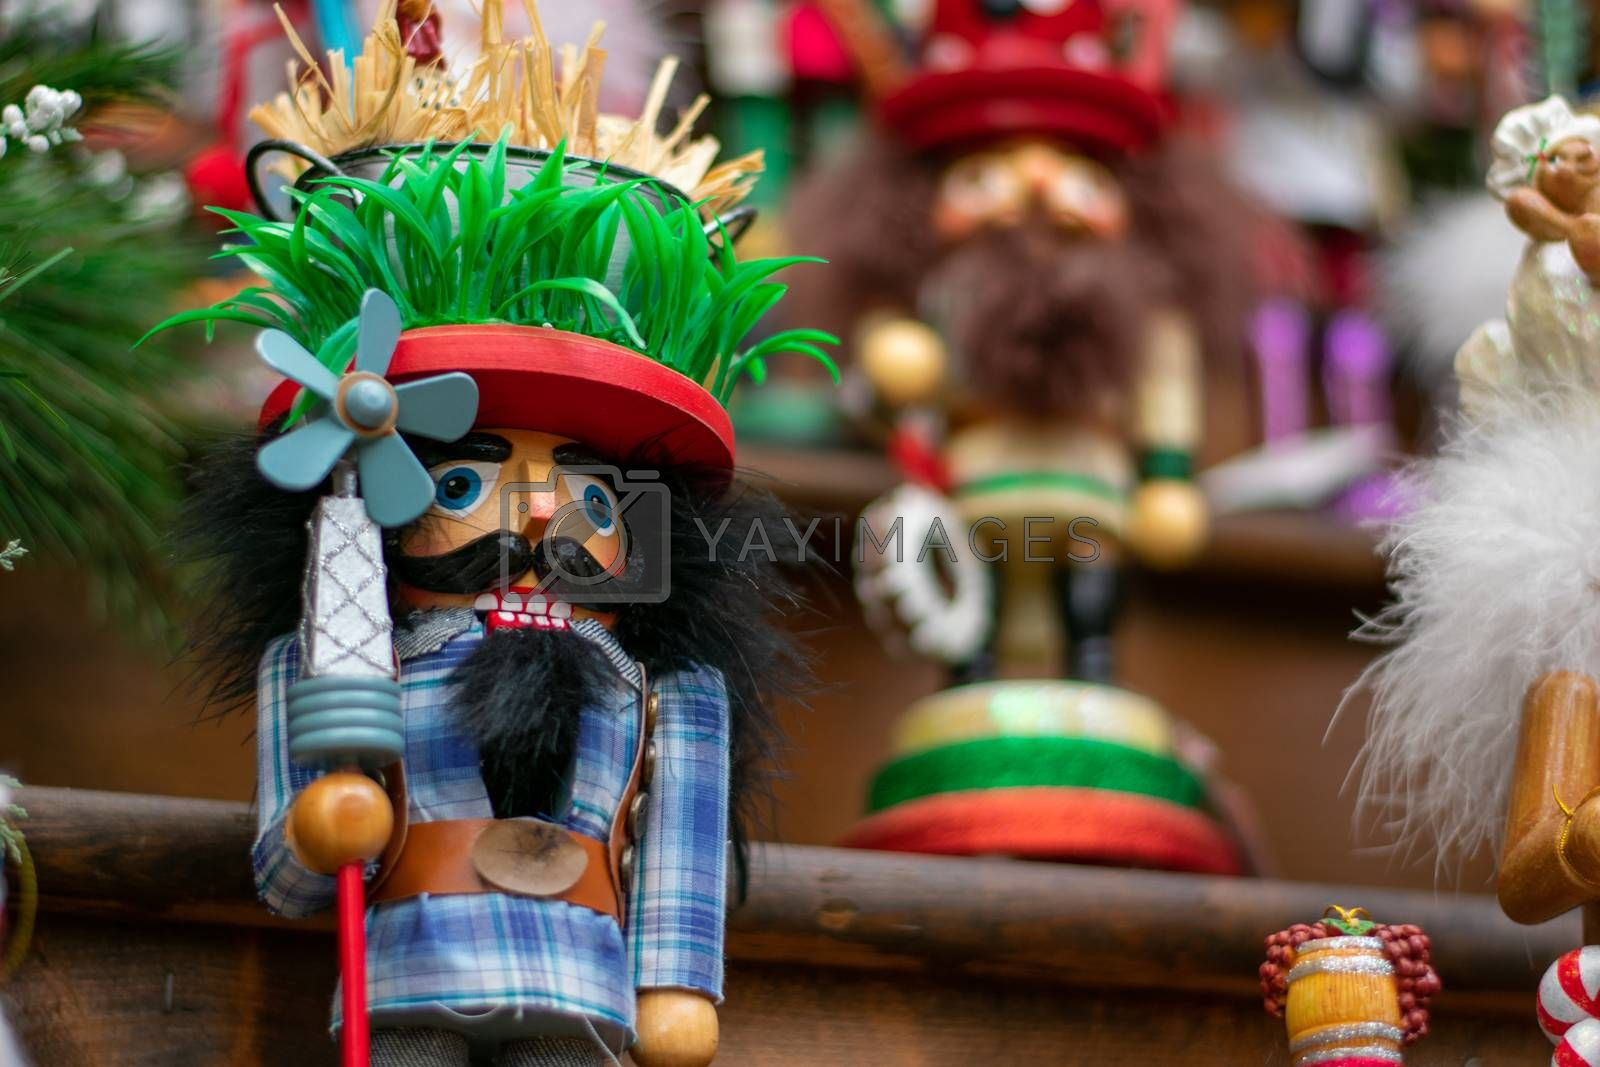 A Funny Looking Nutcracker on a Wooden Shelf In Line With Other Nutcrackers